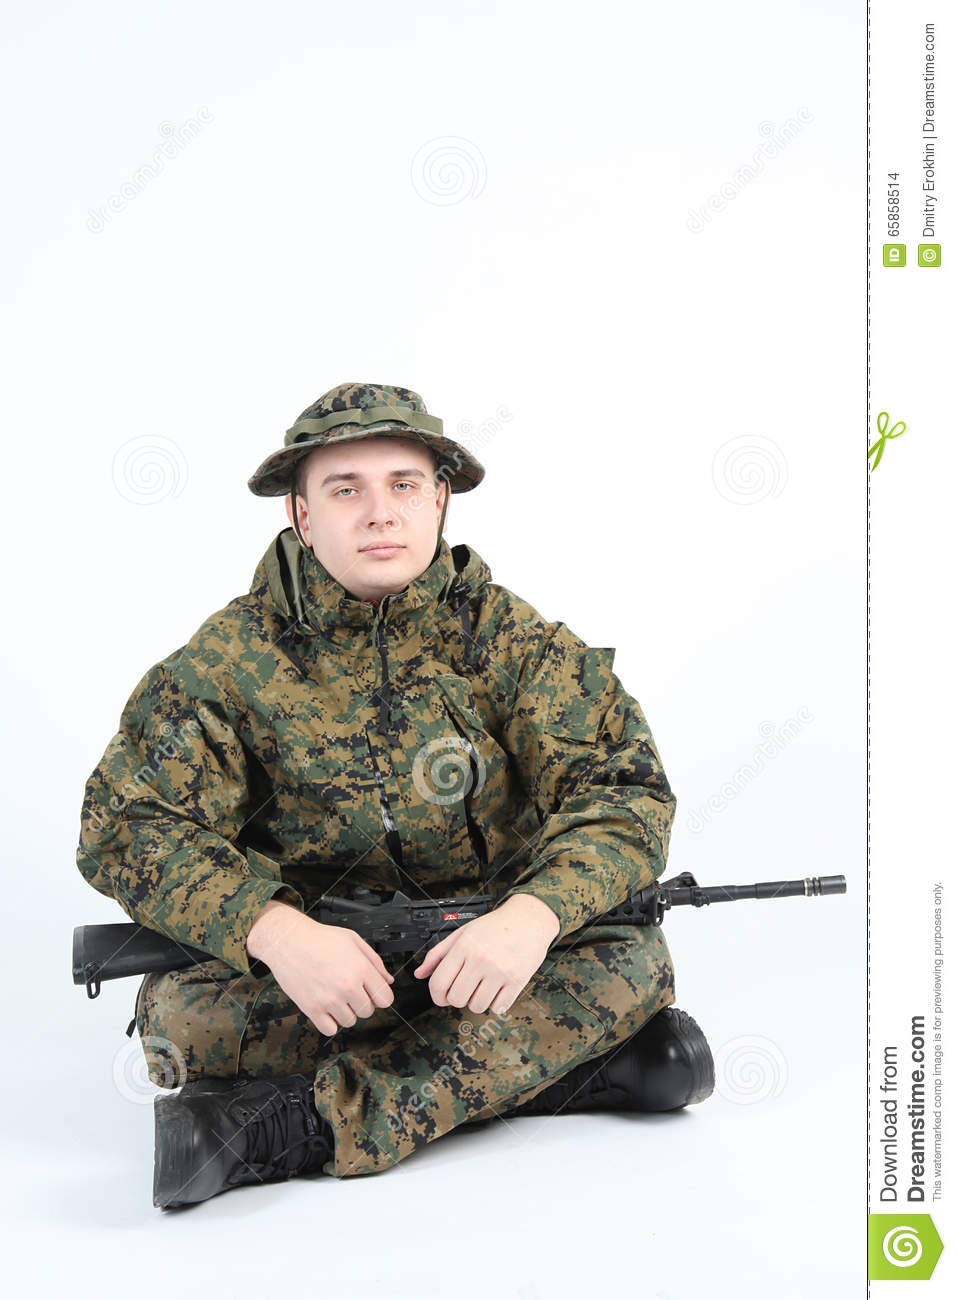 A soldier with gun